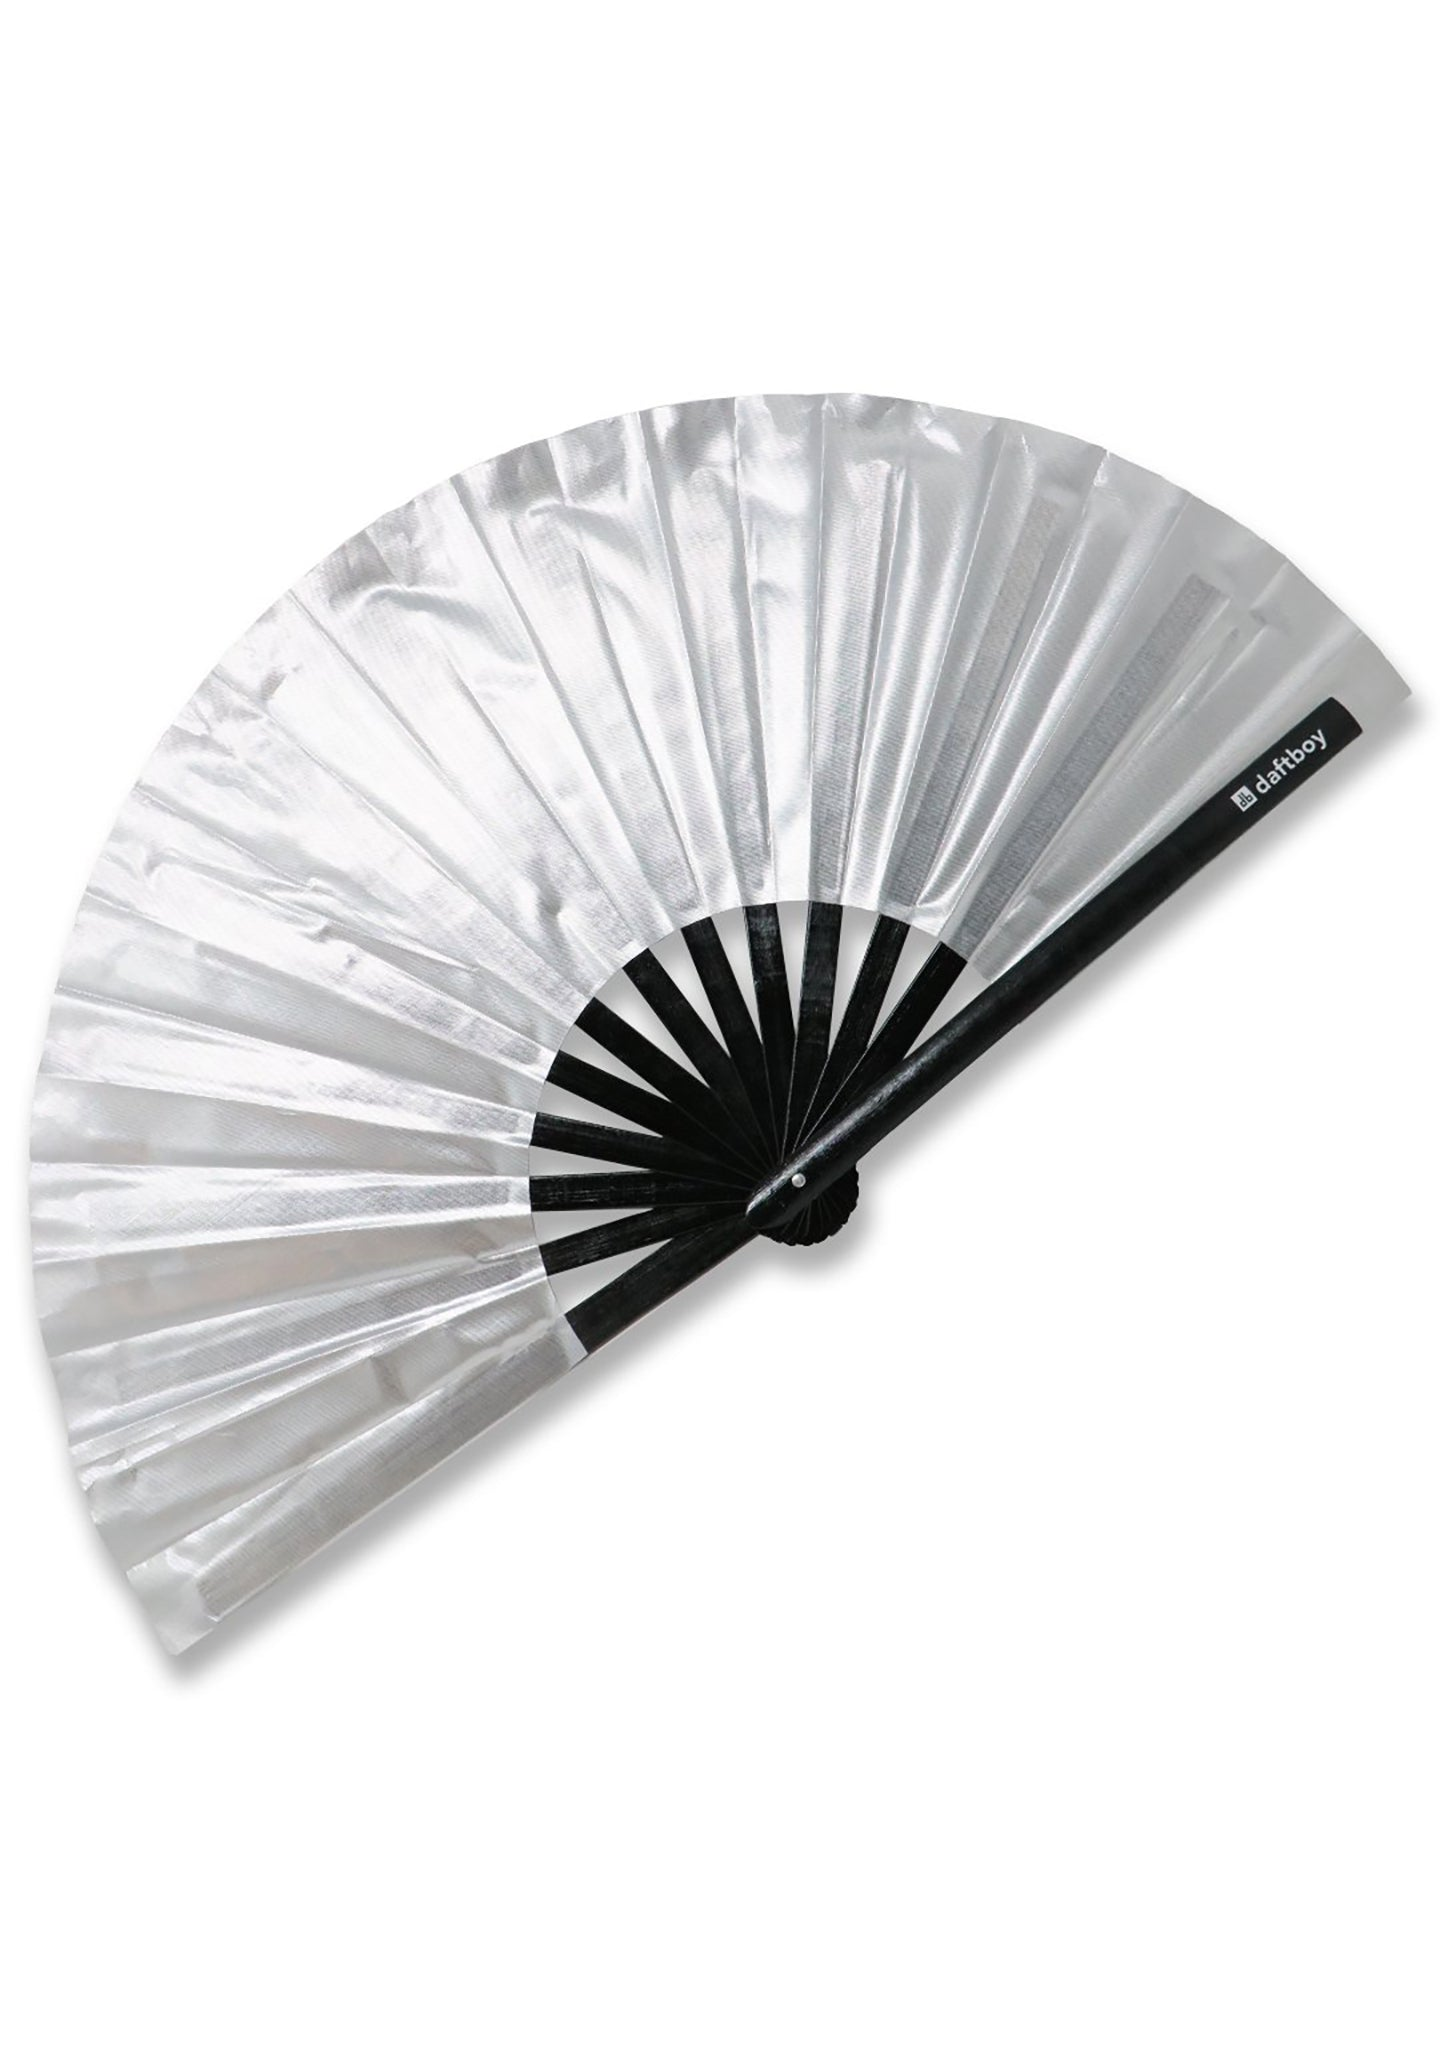 Beyond Basic Metallic Chrome Silver Fan